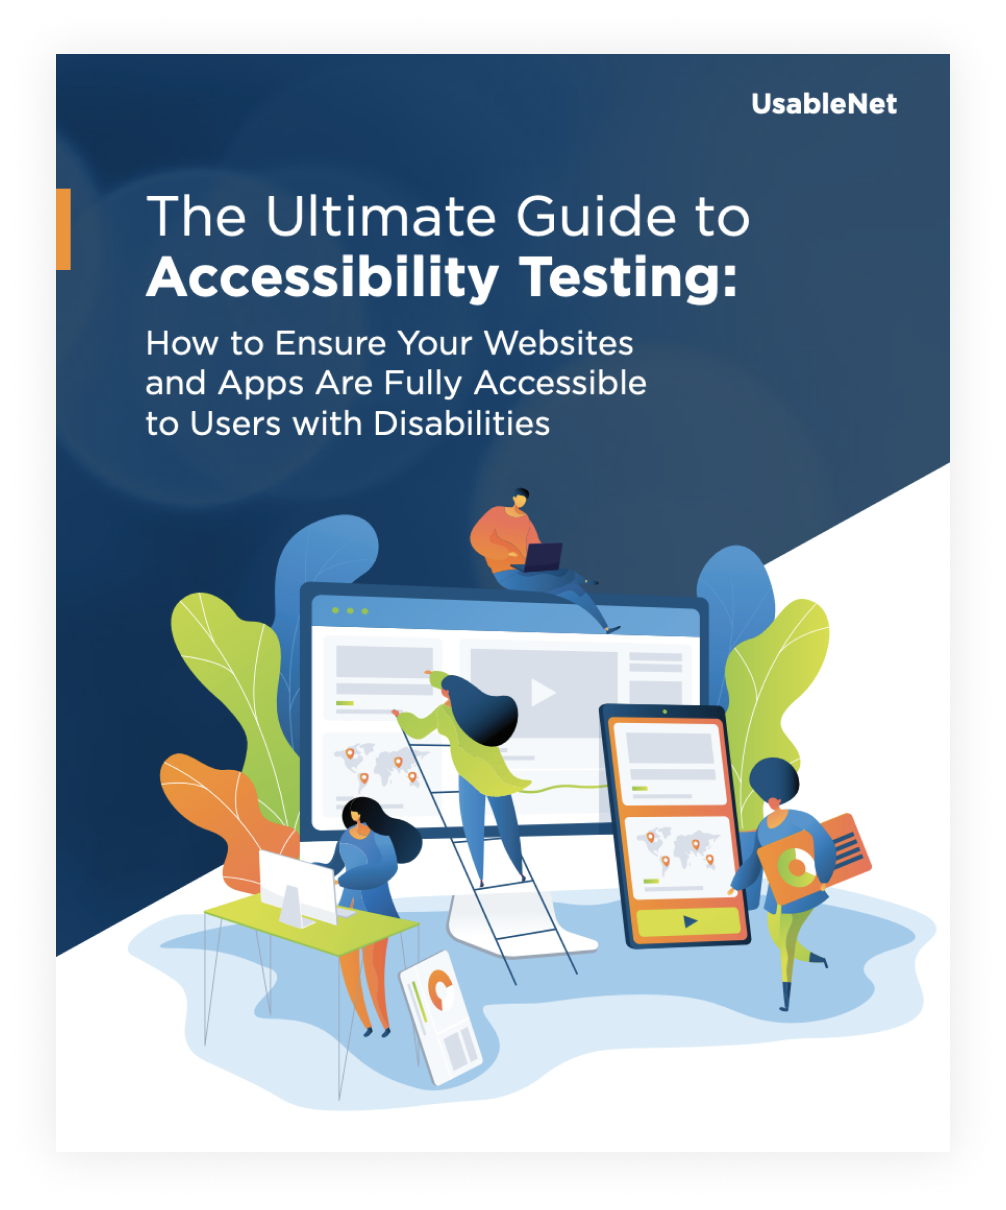 Cover Page for The Ultimate Guide to Accessibility Testing